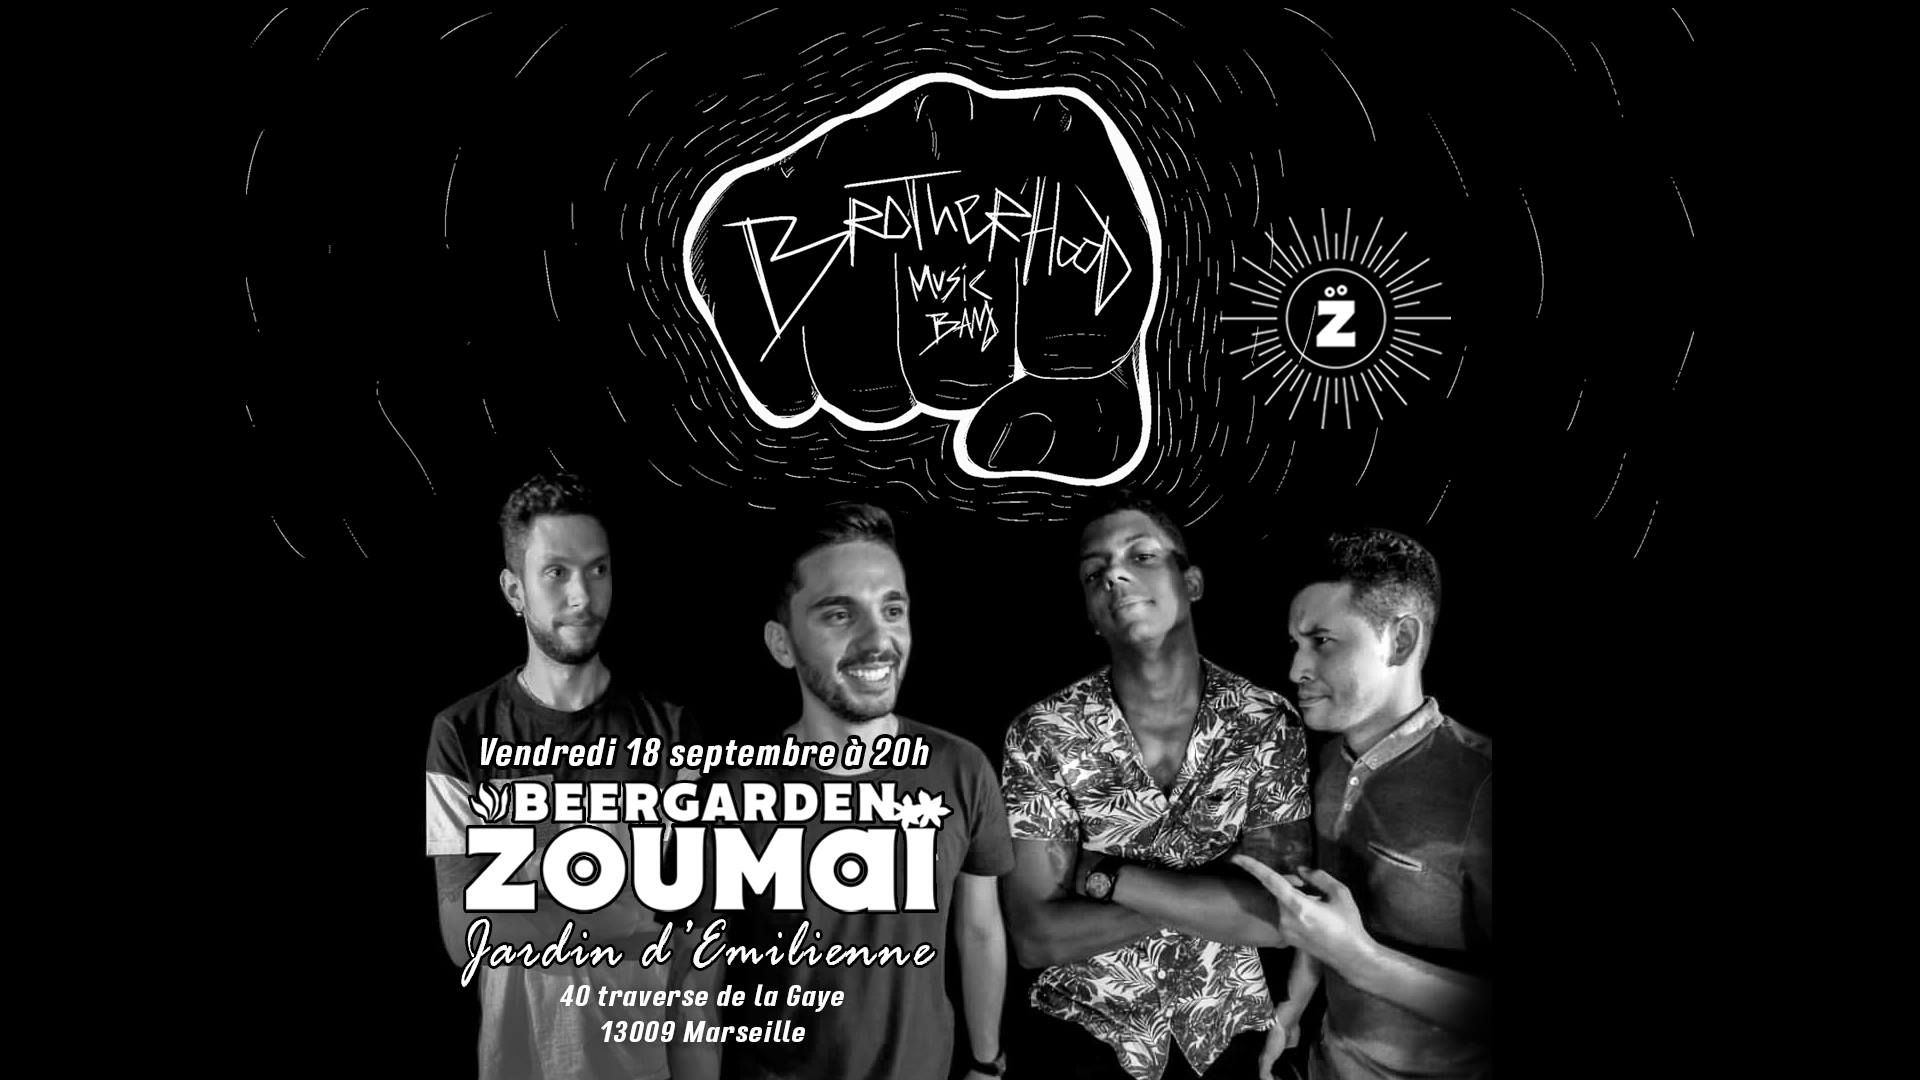 https://the-place-to-be.fr/wp-content/uploads/2020/09/apero-concert-zoumai-beergarden-15-septembre-2020-ou-sortir-a-marseille.jpg